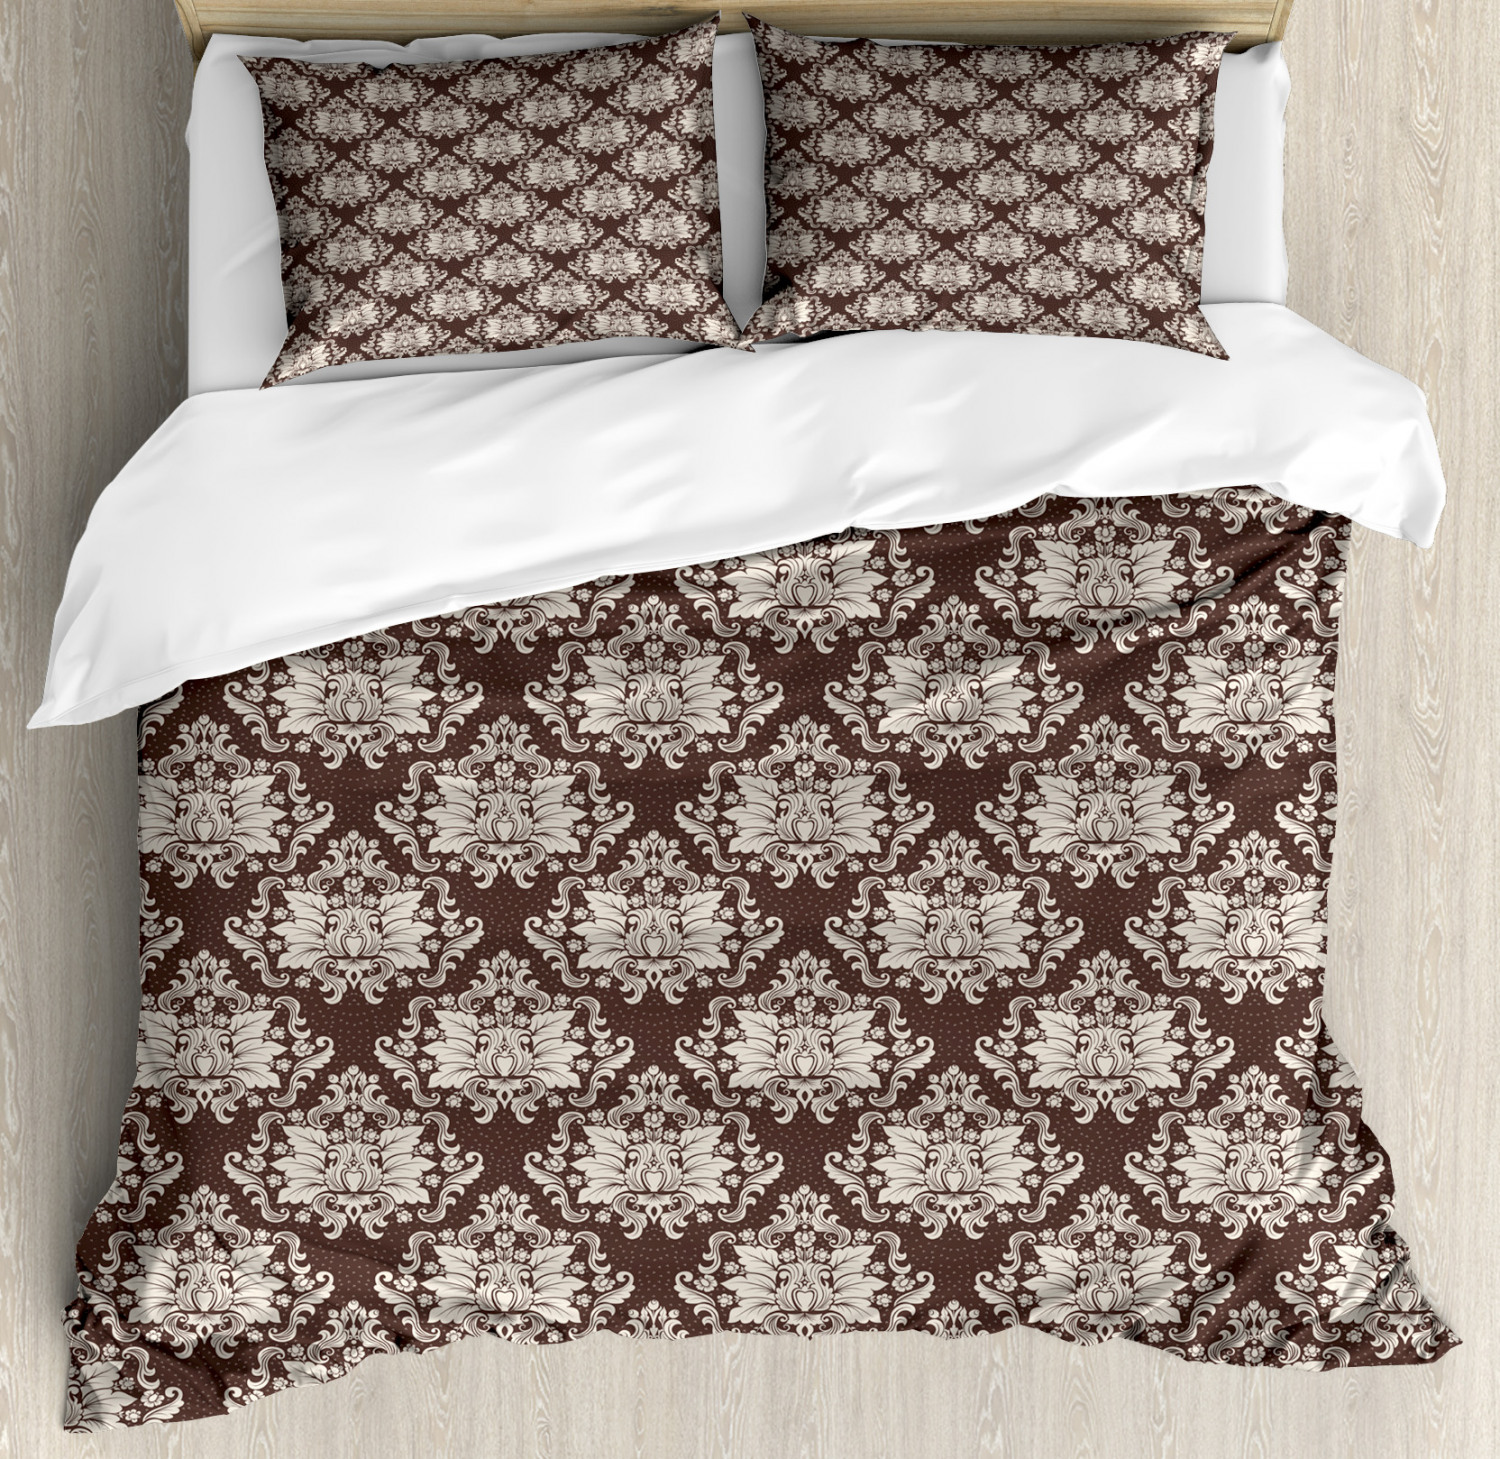 Damask King Size Duvet Cover Set Victorian Floral Pattern With Blooming Foliage Leaves On Dark Toned Backdrop Decorative 3 Piece Bedding Set With 2 Pillow Shams Brown And Beige By Ambesonne